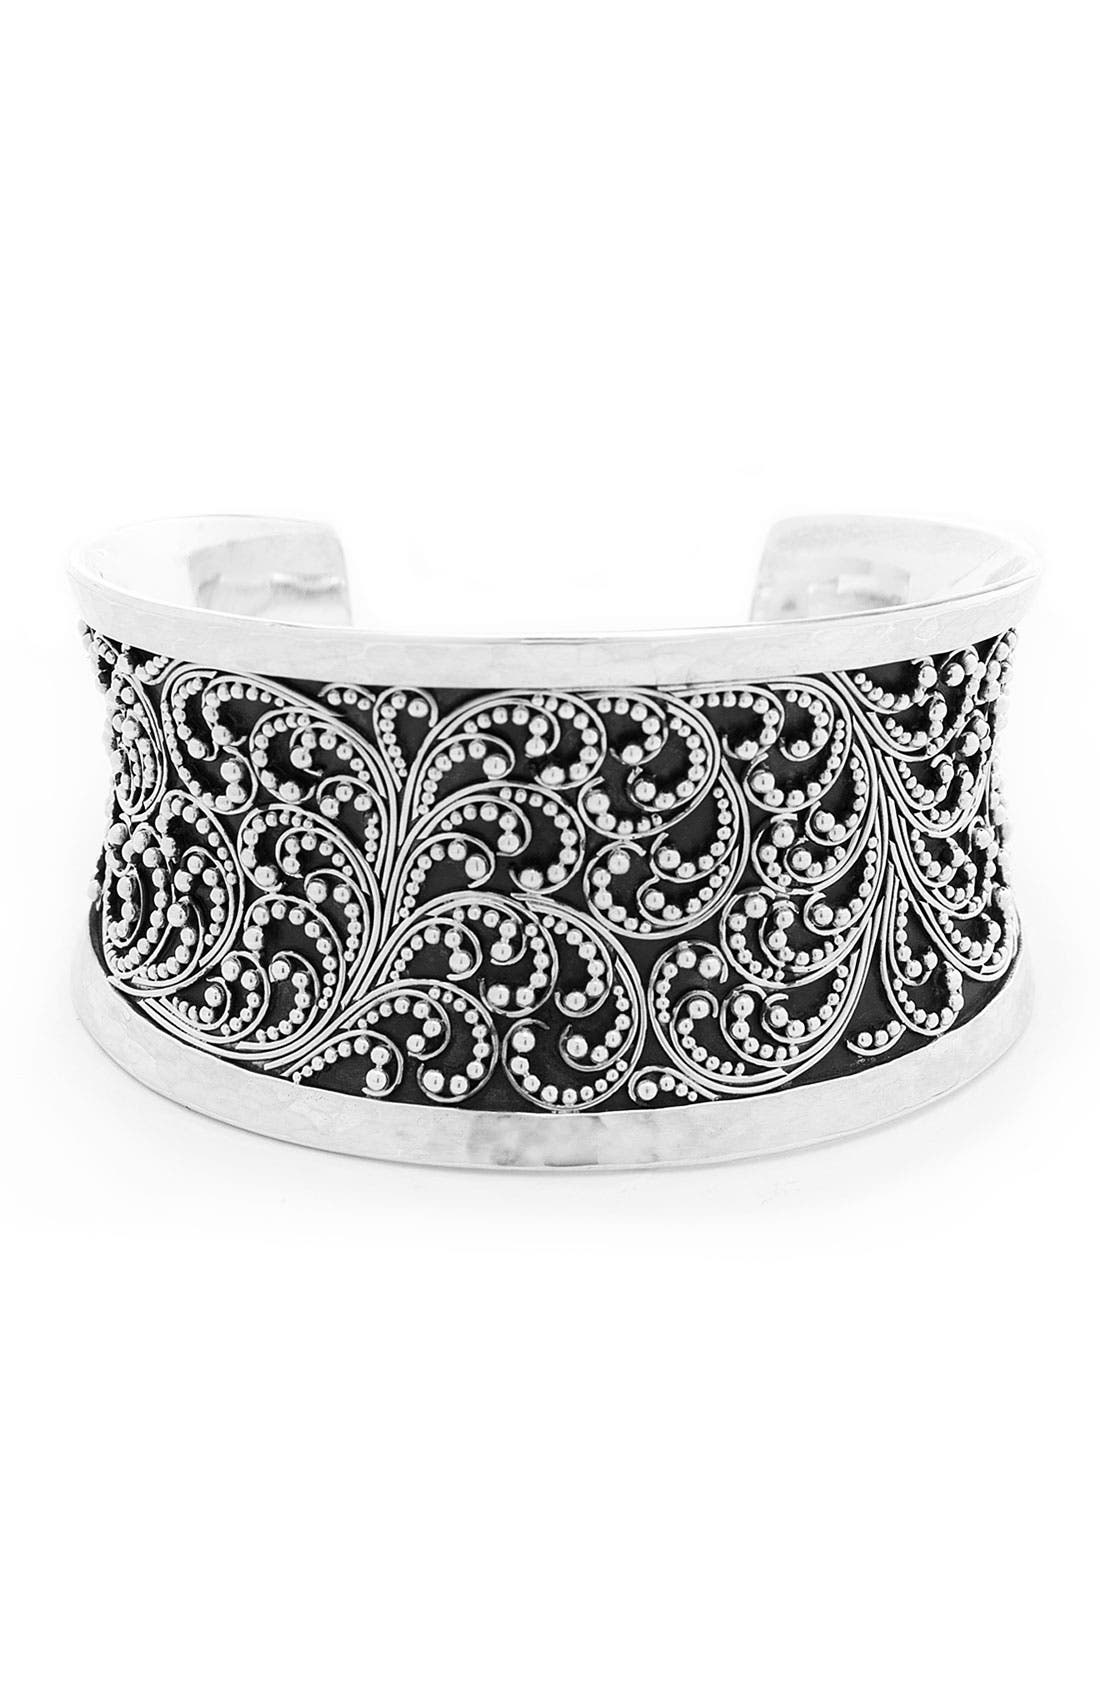 Alternate Image 1 Selected - Lois Hill Granulated Hammered Silver Cuff Bracelet